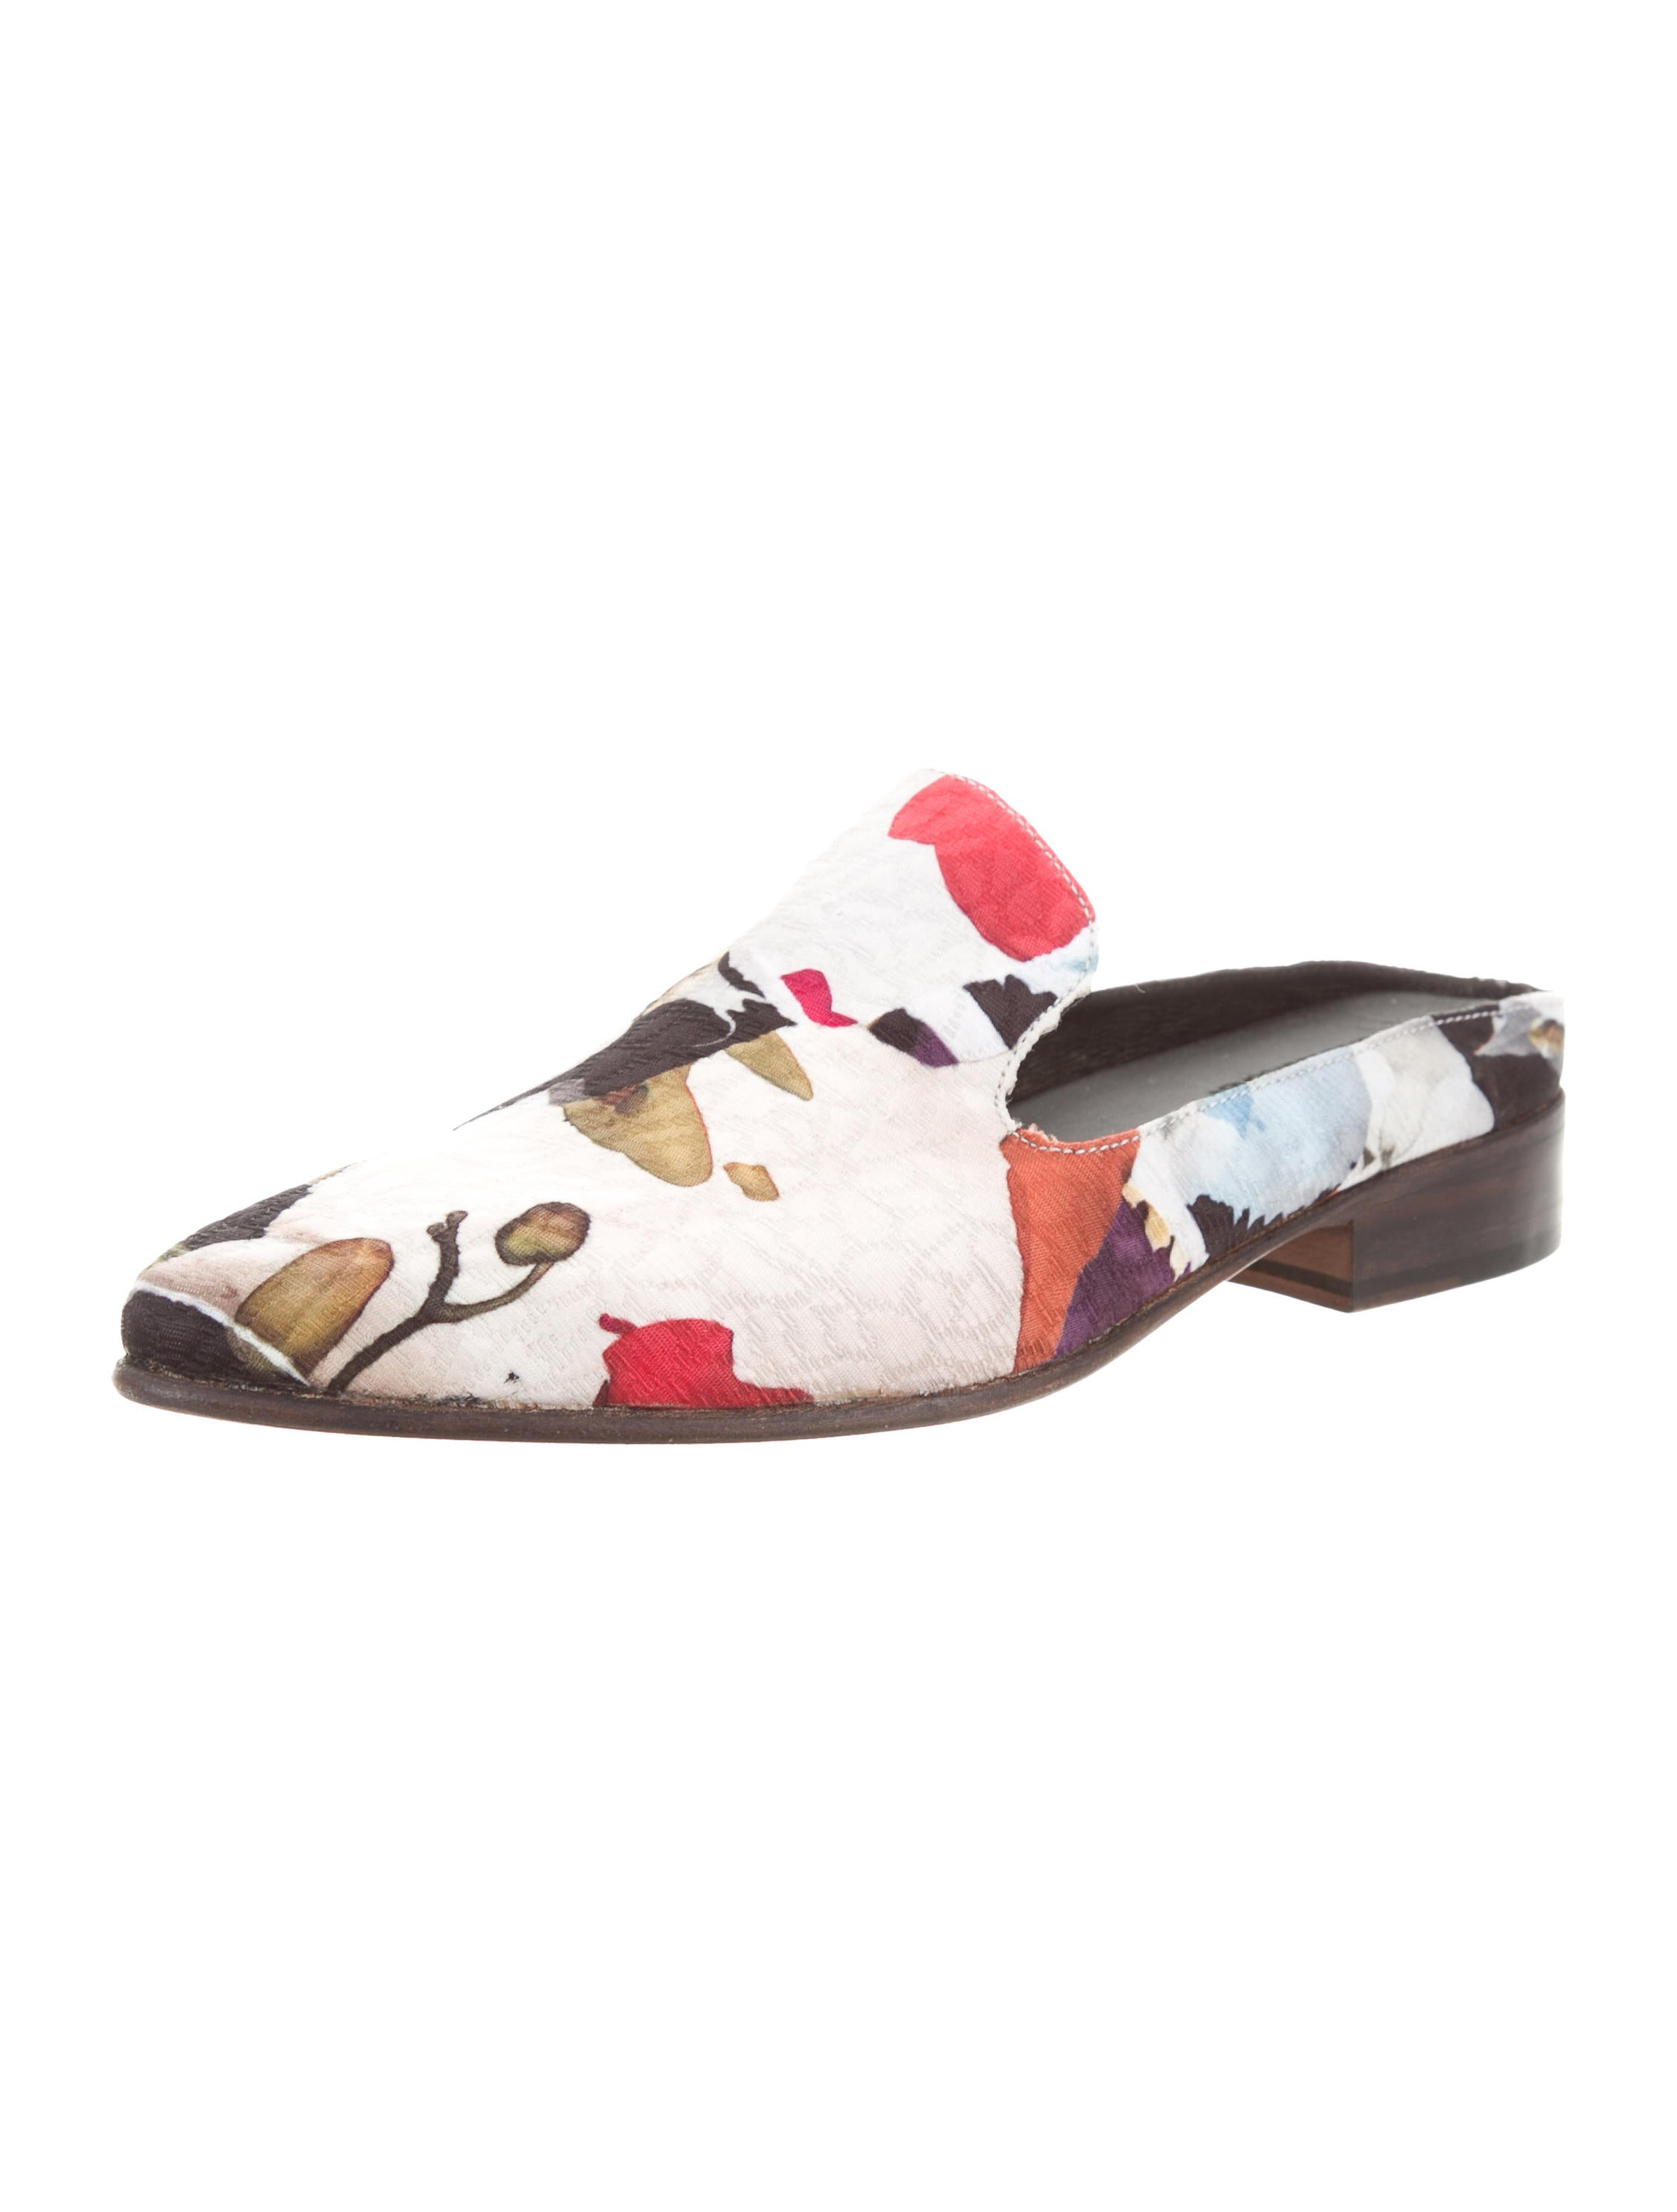 buy cheap from china Esquivel x Jonathan Cohen Woven Floral Mules w/ Tags shopping online for sale buy cheap best wholesale release dates for sale cheap new styles p6wa72YpT